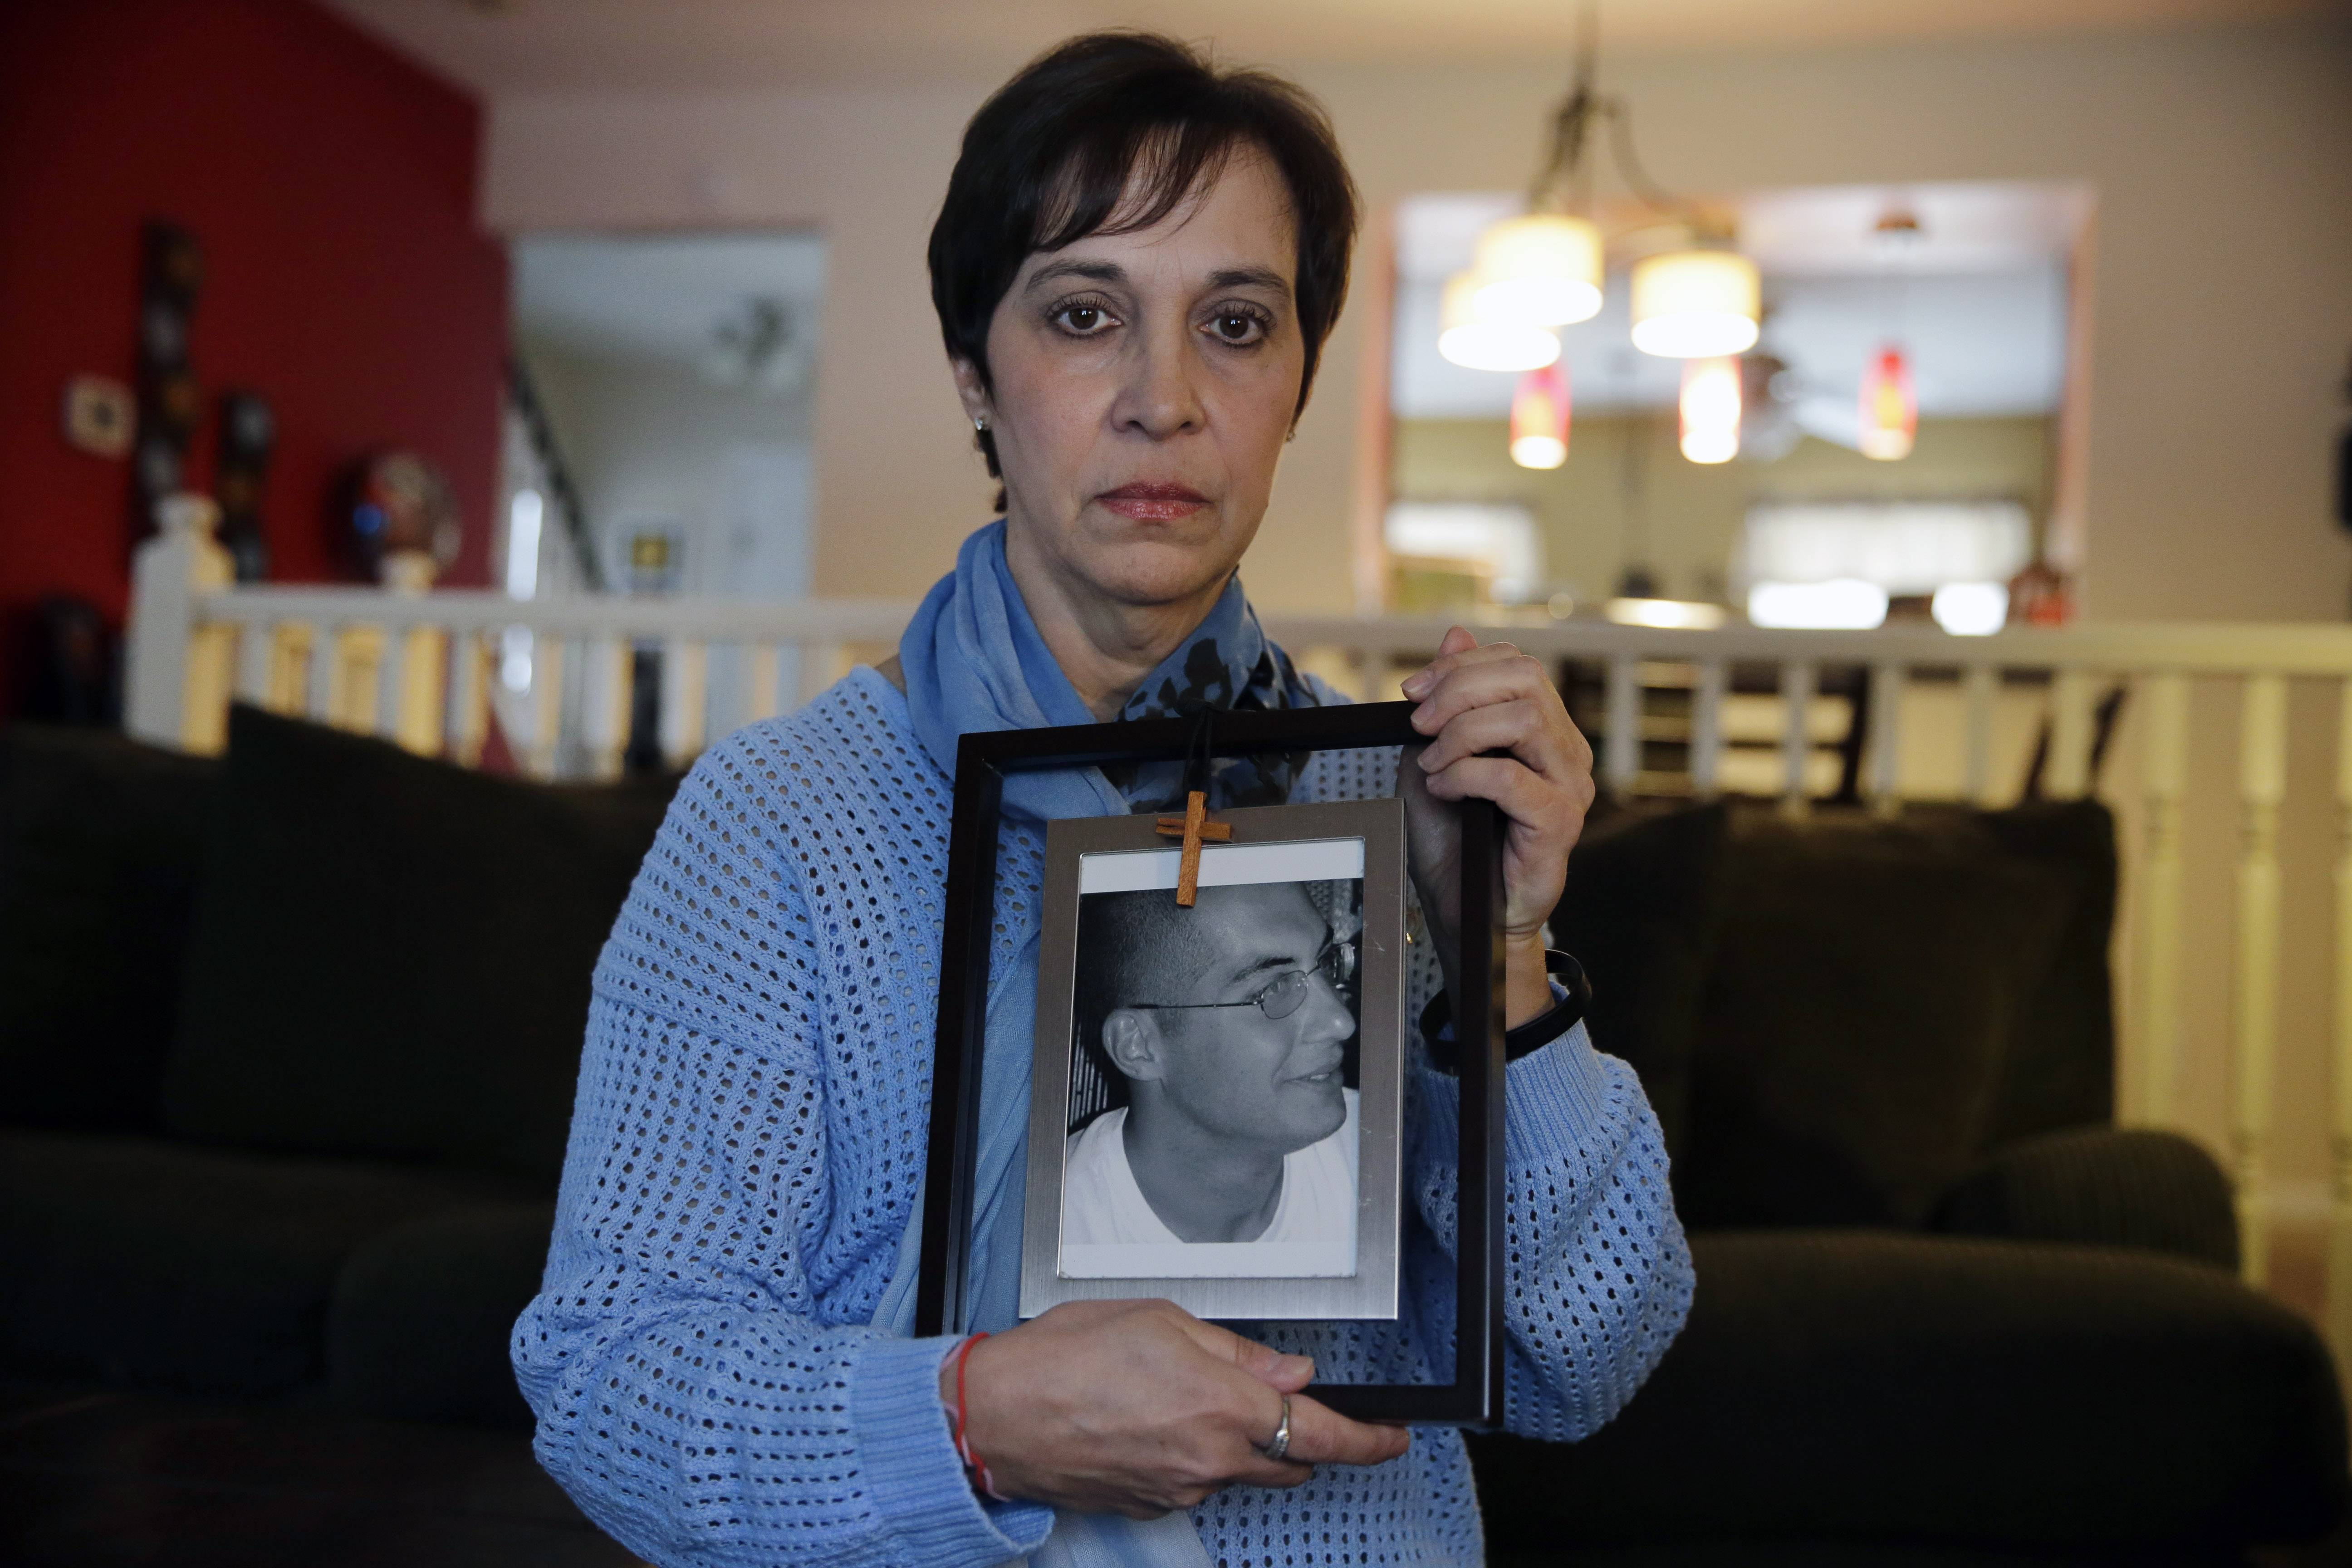 Patty DiRenzo holds a picture of her son, Salvatore Marchese, in her home in Blackwood, N.J. Salvatore died from a heroin overdose in 2010.